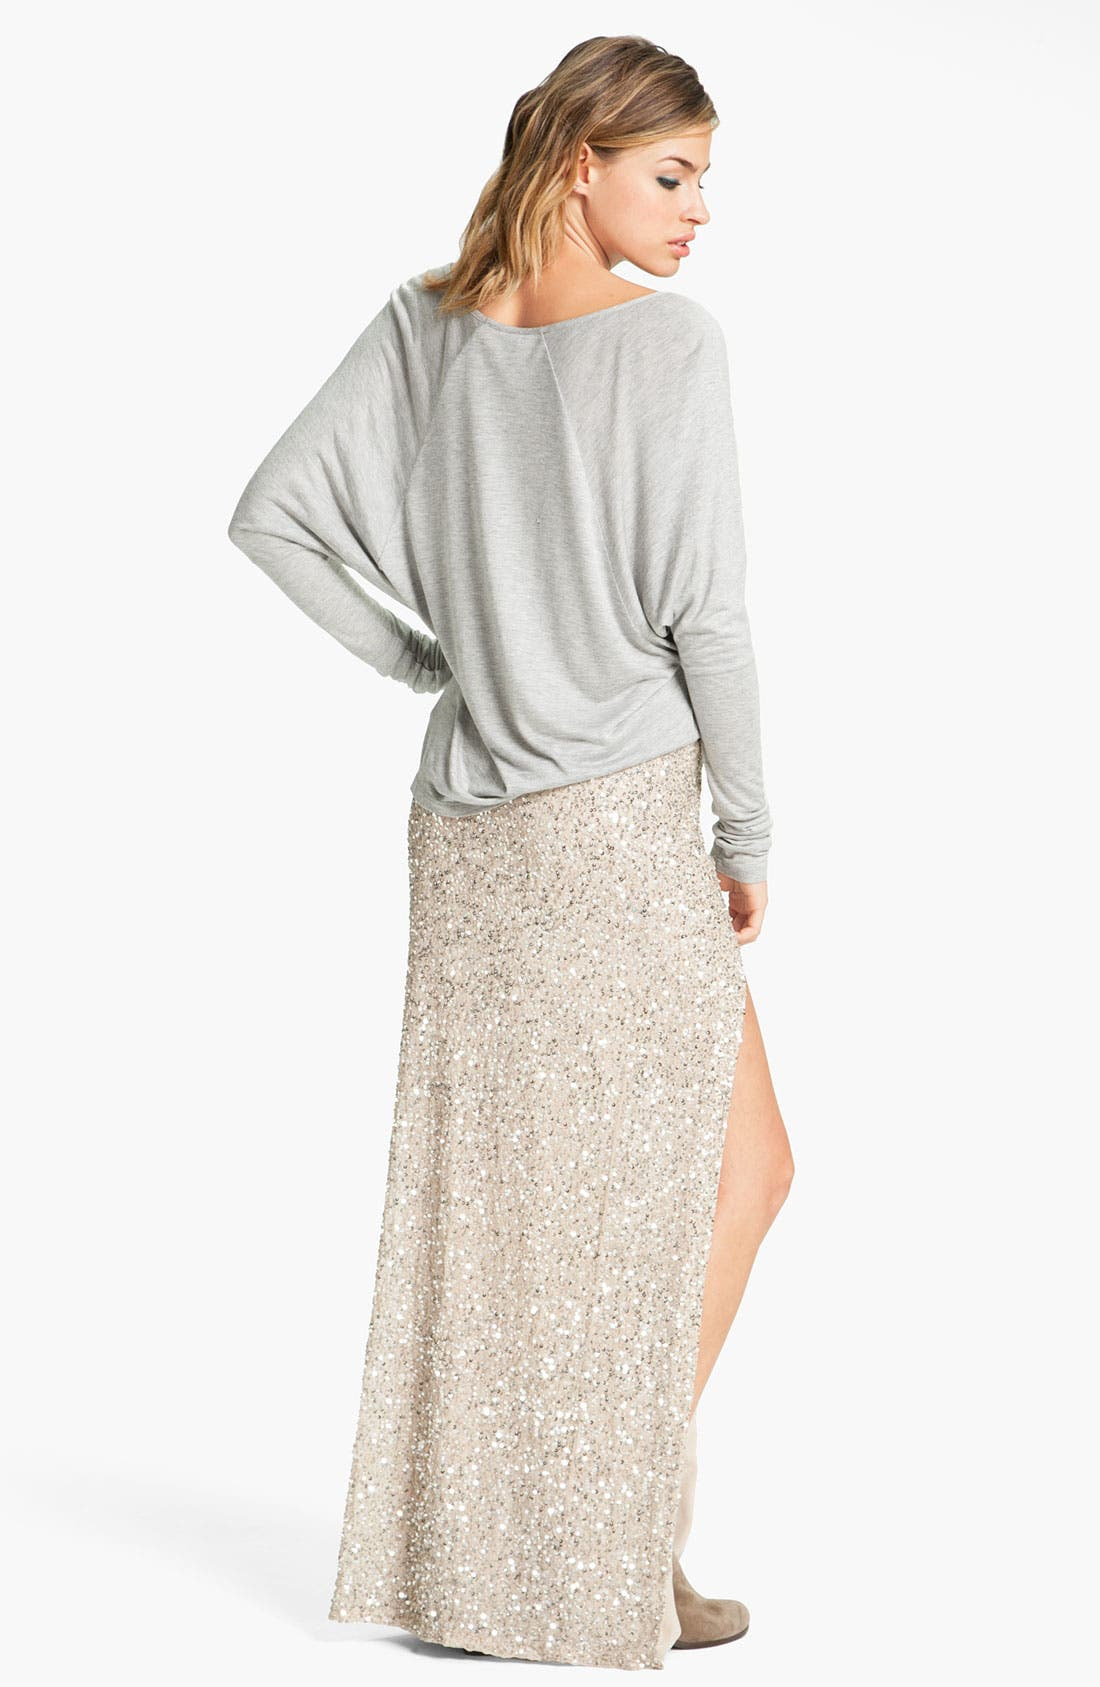 HAUTE HIPPIE,                             Embellished Maxi Skirt,                             Alternate thumbnail 3, color,                             040